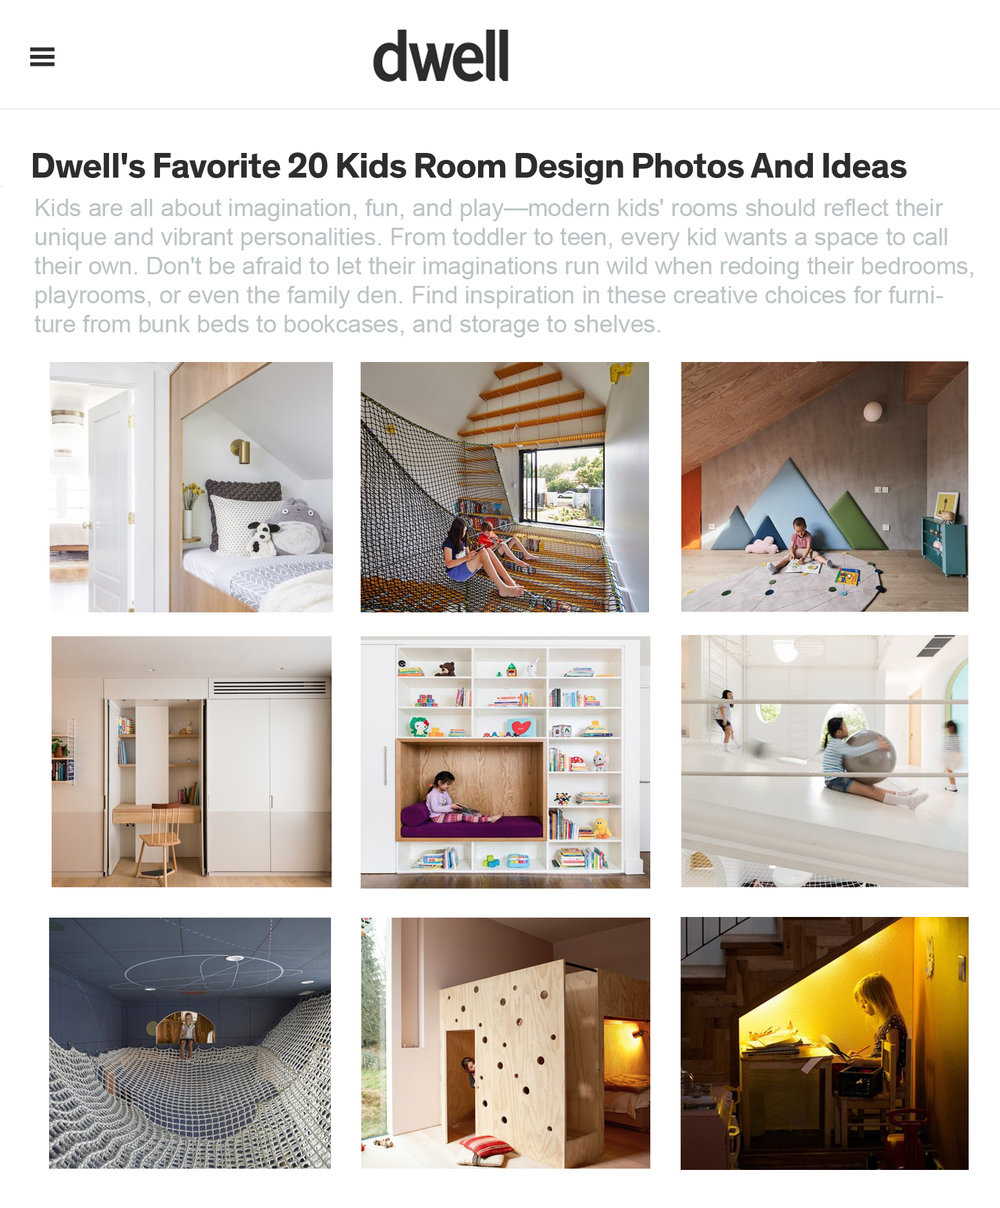 "Dwell     Mar 2019  Dwell's Favorite 20 Modern Kids Room Design photos and ideas:  ""Kids are all about imagination, fun and play - find inspiration in these creative choices for furniture from bunk beds to bookcases and storage to shelves."""